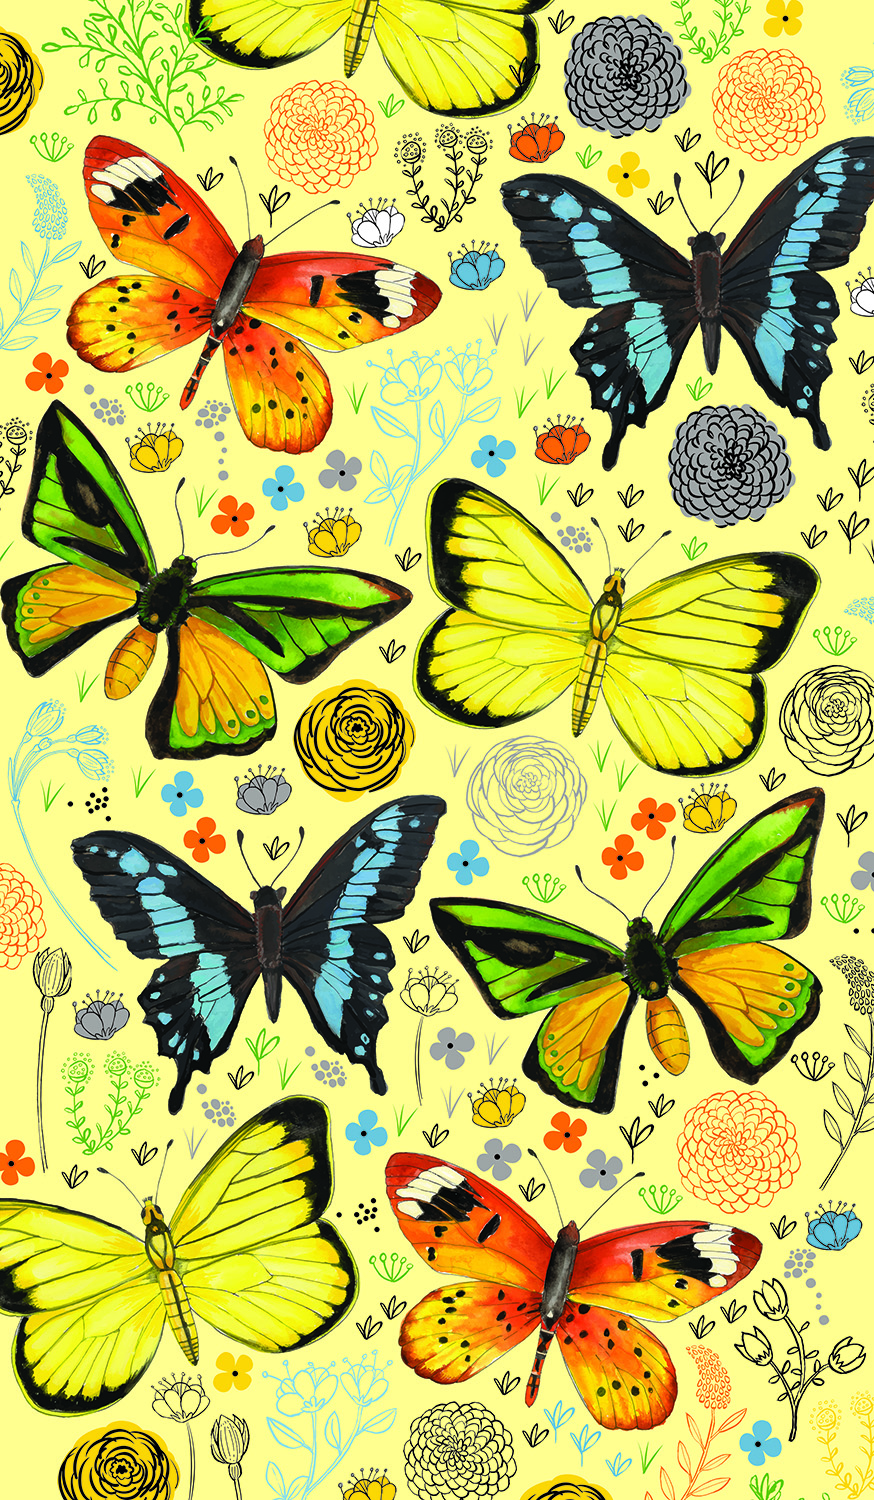 Floral and Butterflies2.jpg